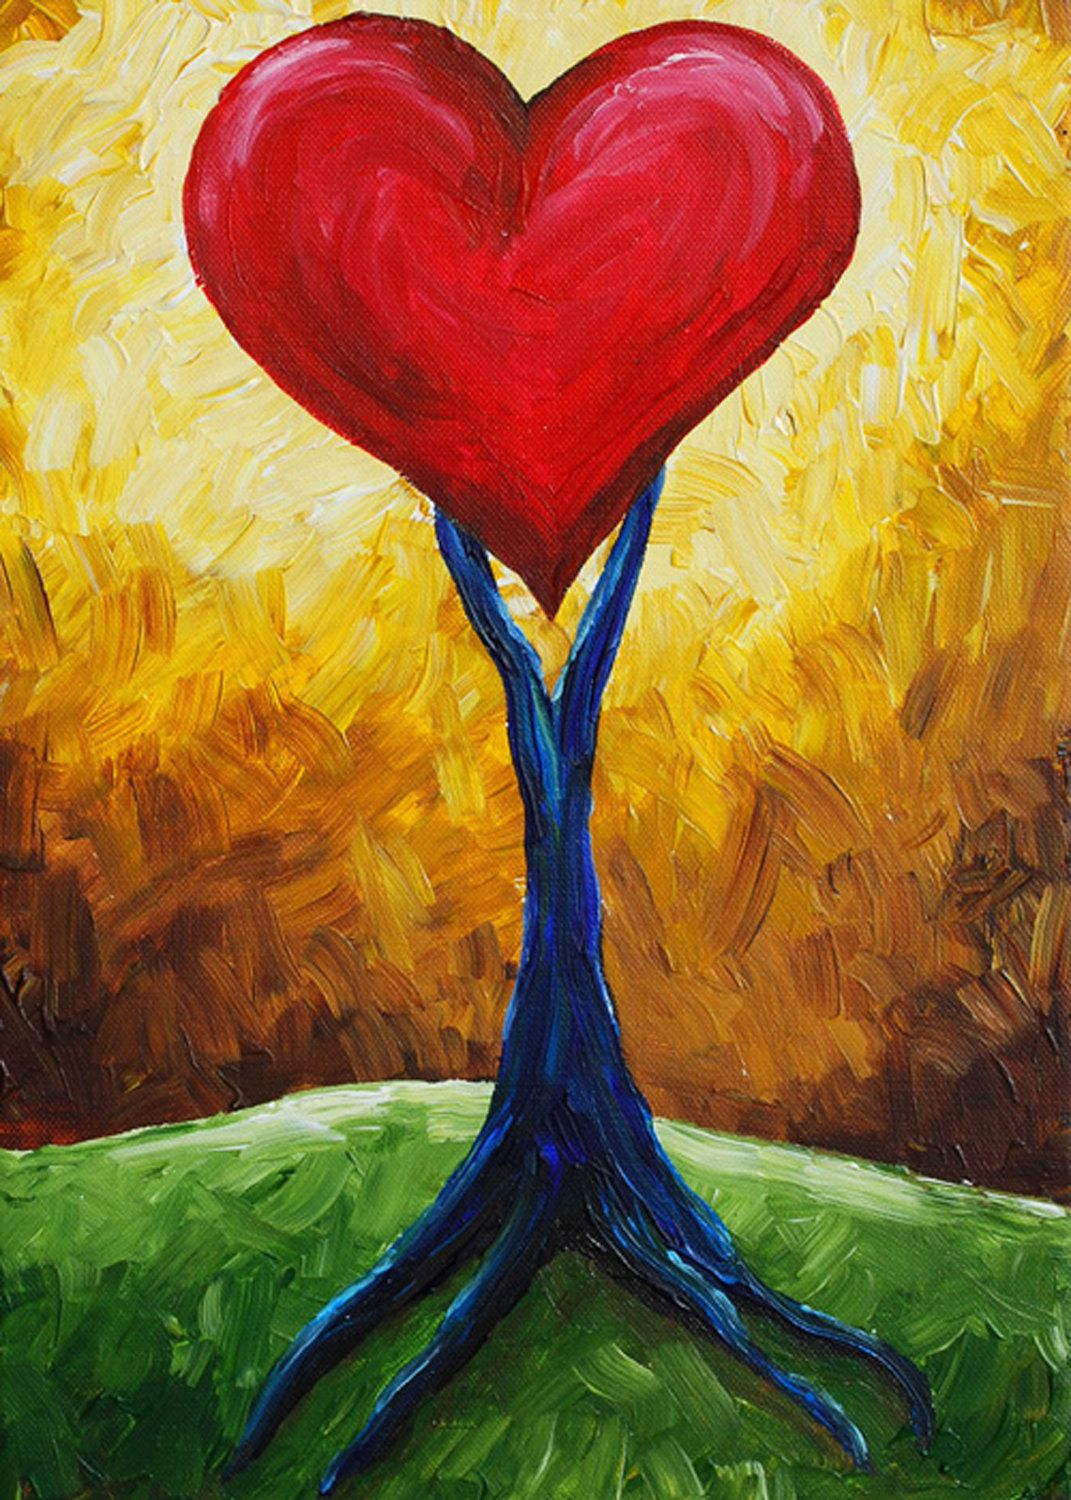 images for gt best abstract paintings love lovehearts